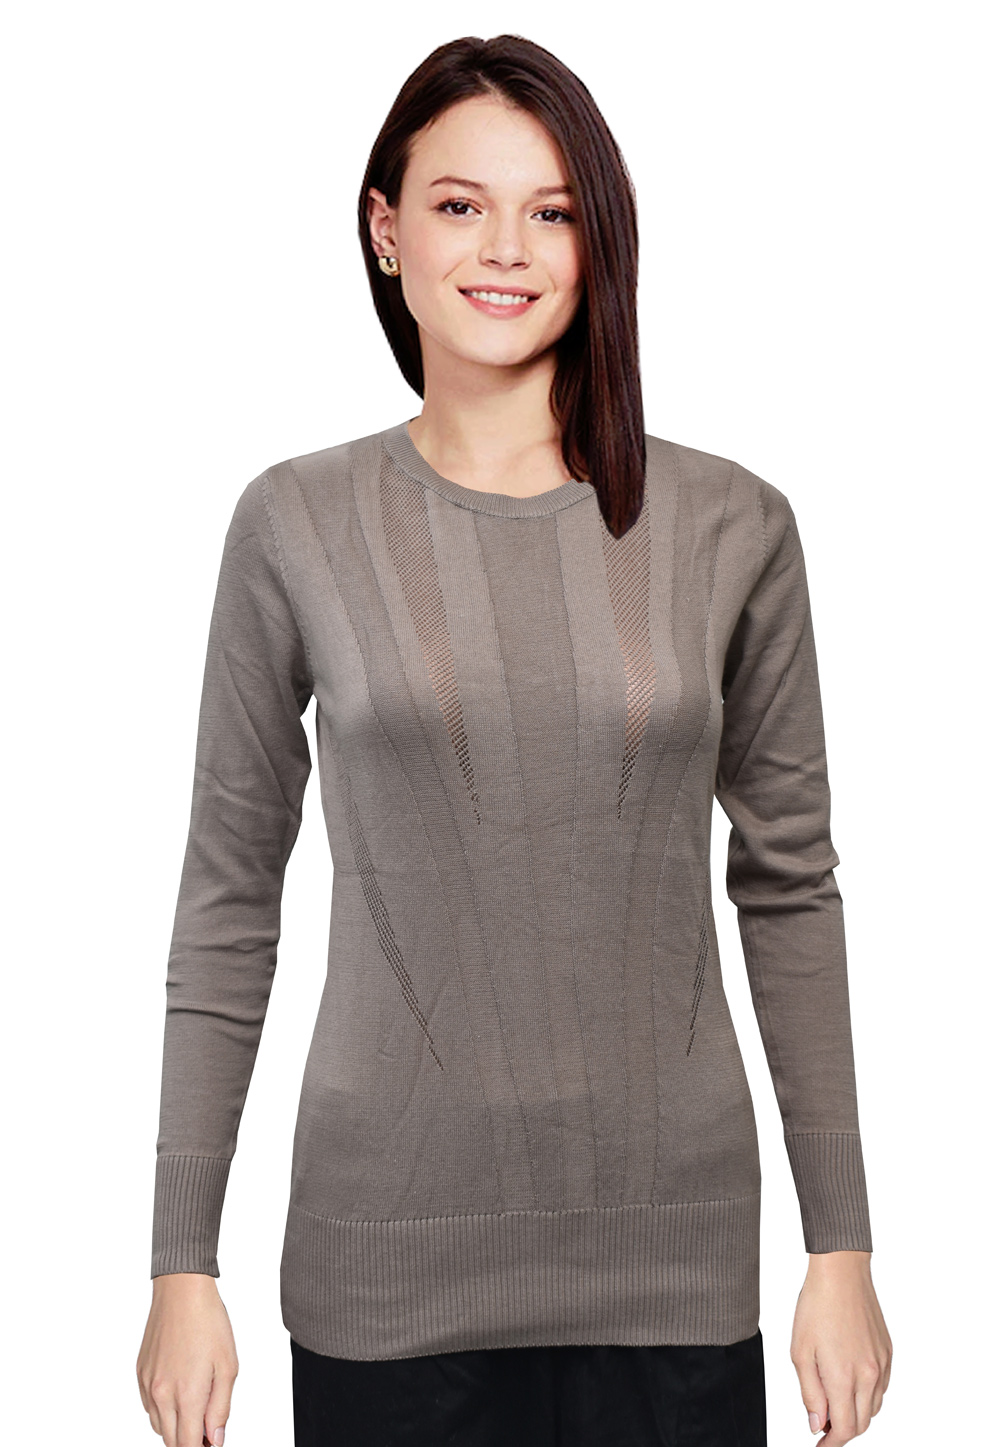 Grey Woolen Knitted Sweater Tops 214243